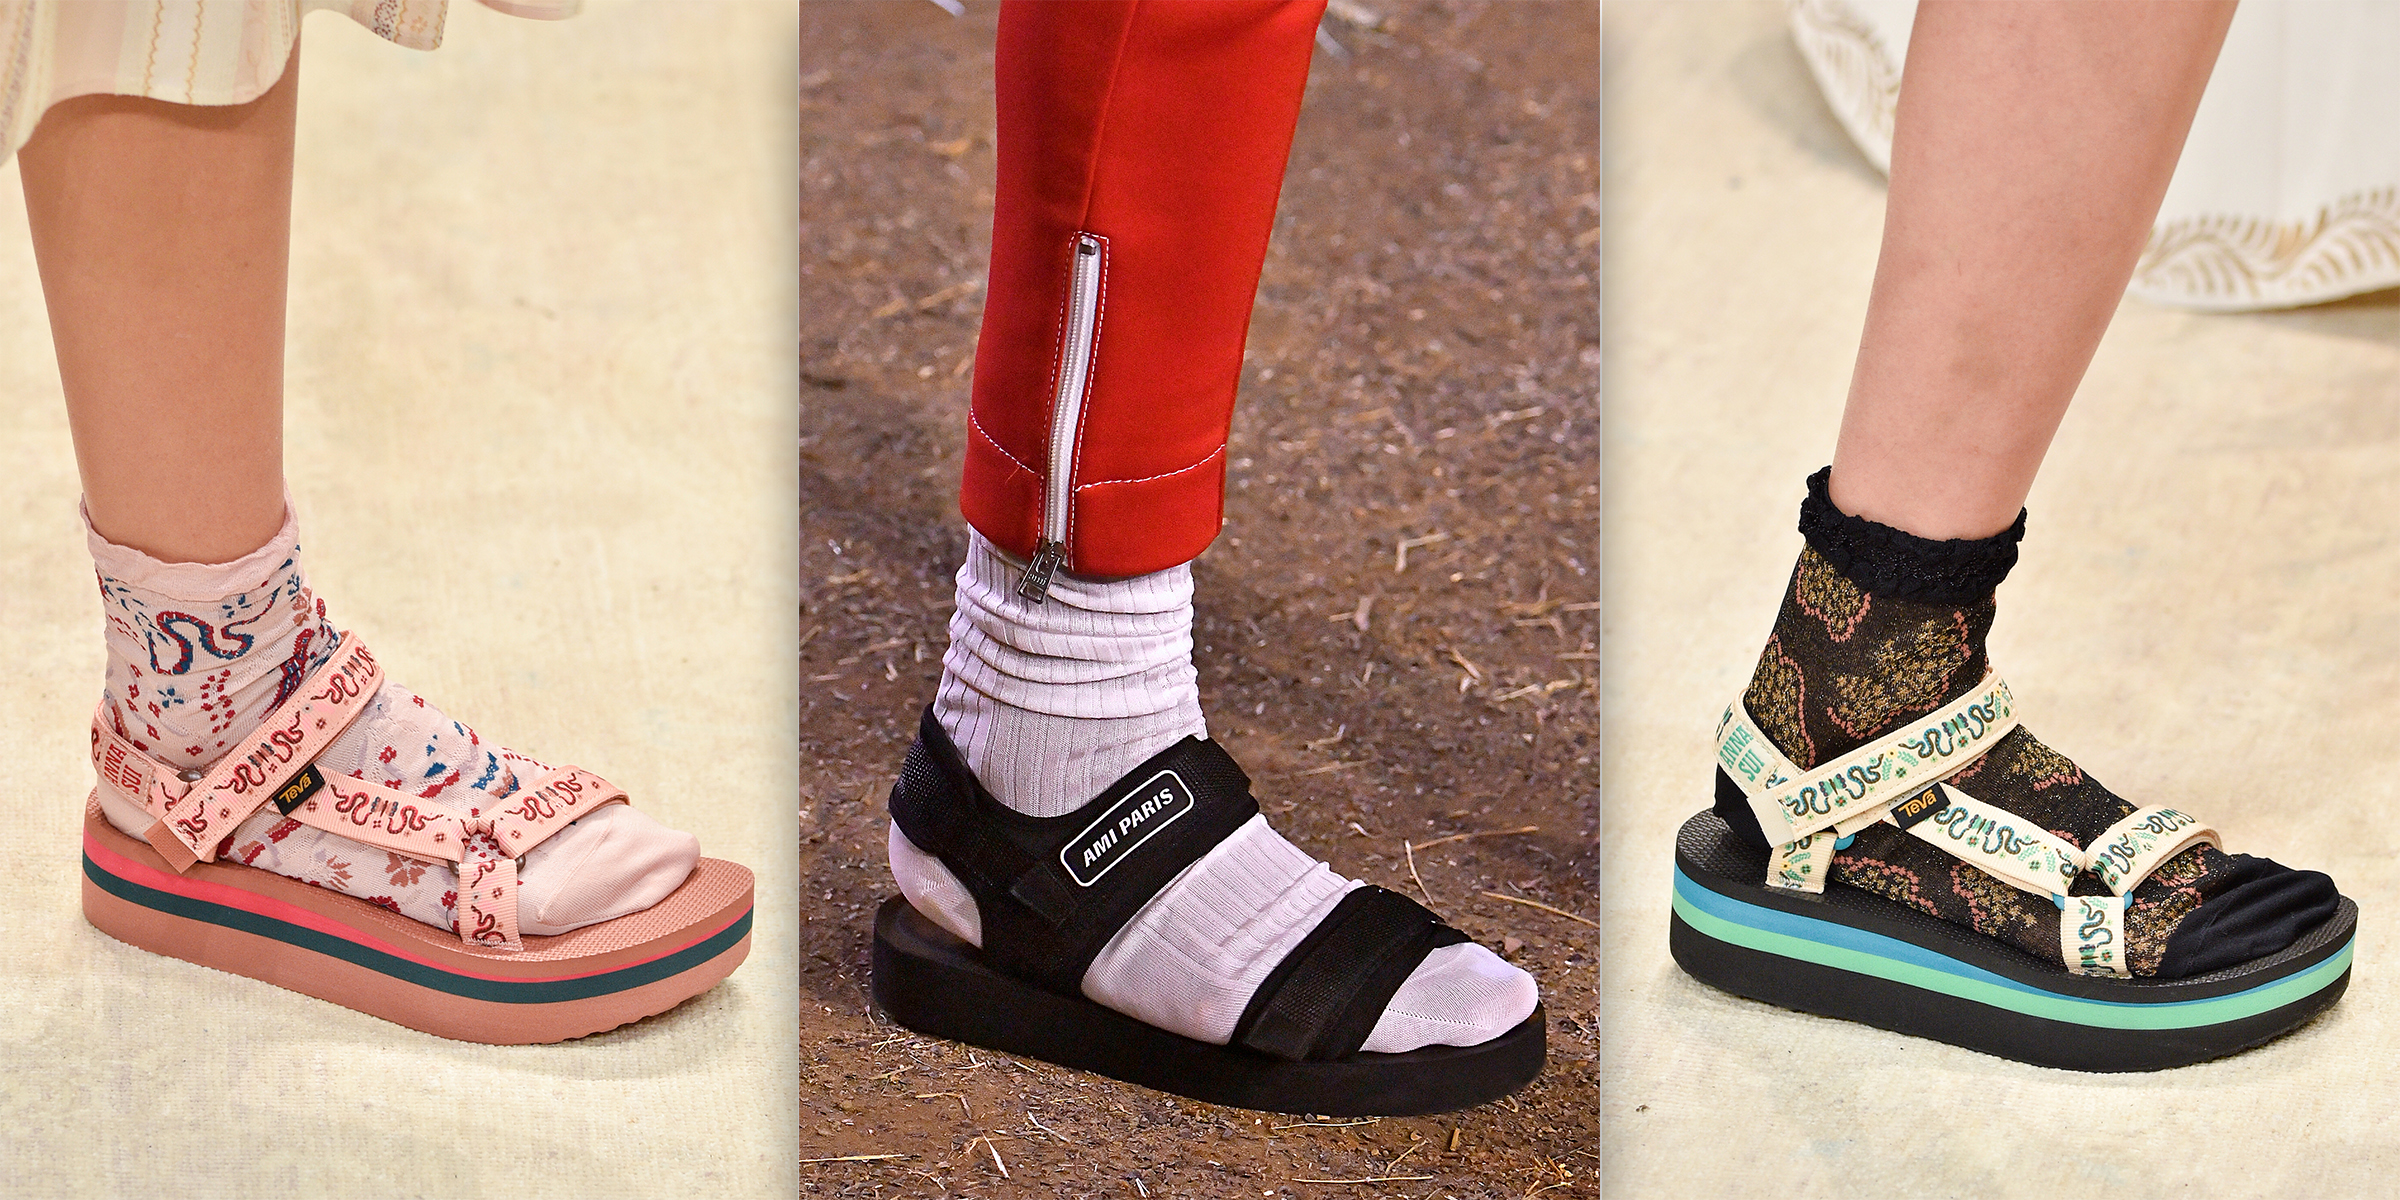 Ugly Sandals Are Trending For Spring Summer 2019